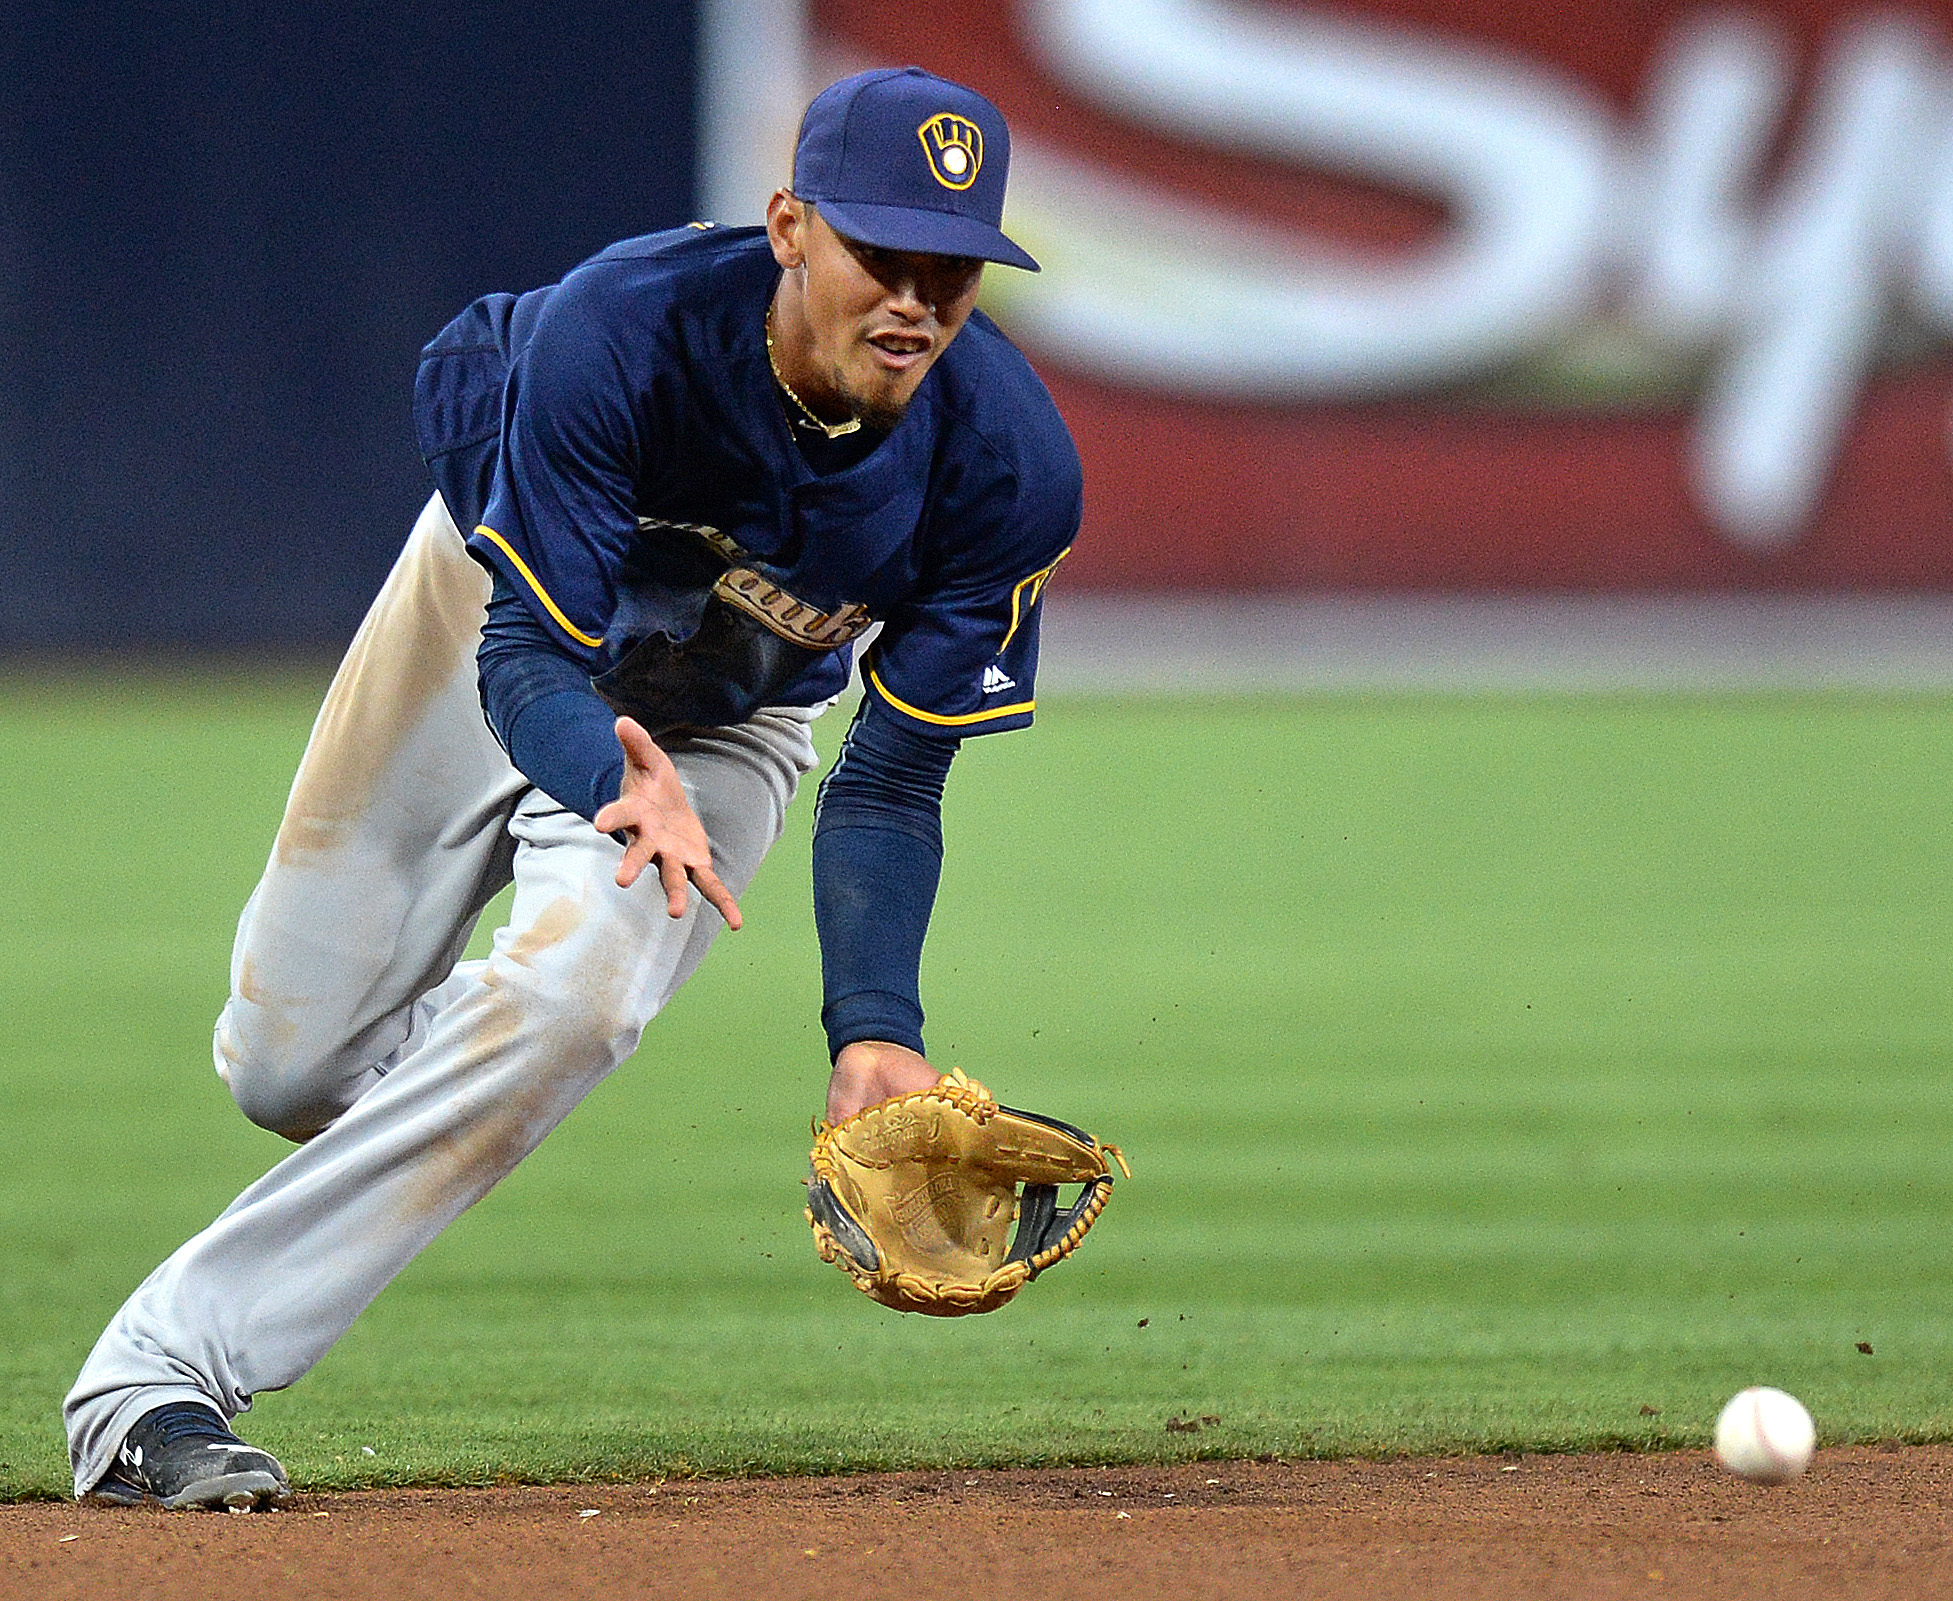 Orlando Arcia is the Mikwaukee Brewers' top prospect.